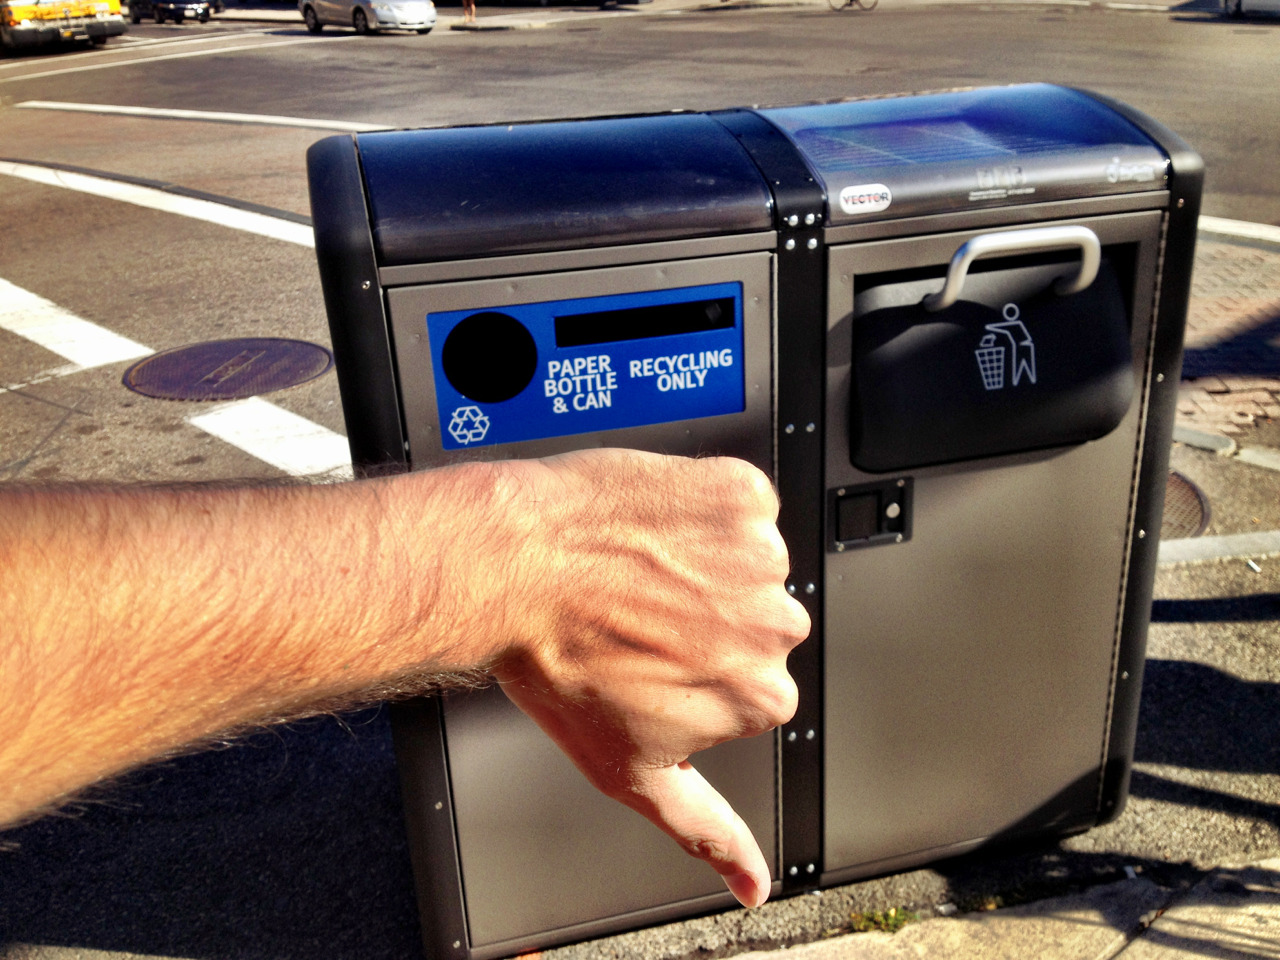 Don't get me wrong, I'm psyched that they put a recycling bin and a solar compactor at Harvard & Brighton. It's just that the bins are basically ON the crosswalk. Over/under on how many days until one of these gets creamed by a curb-hopping car?